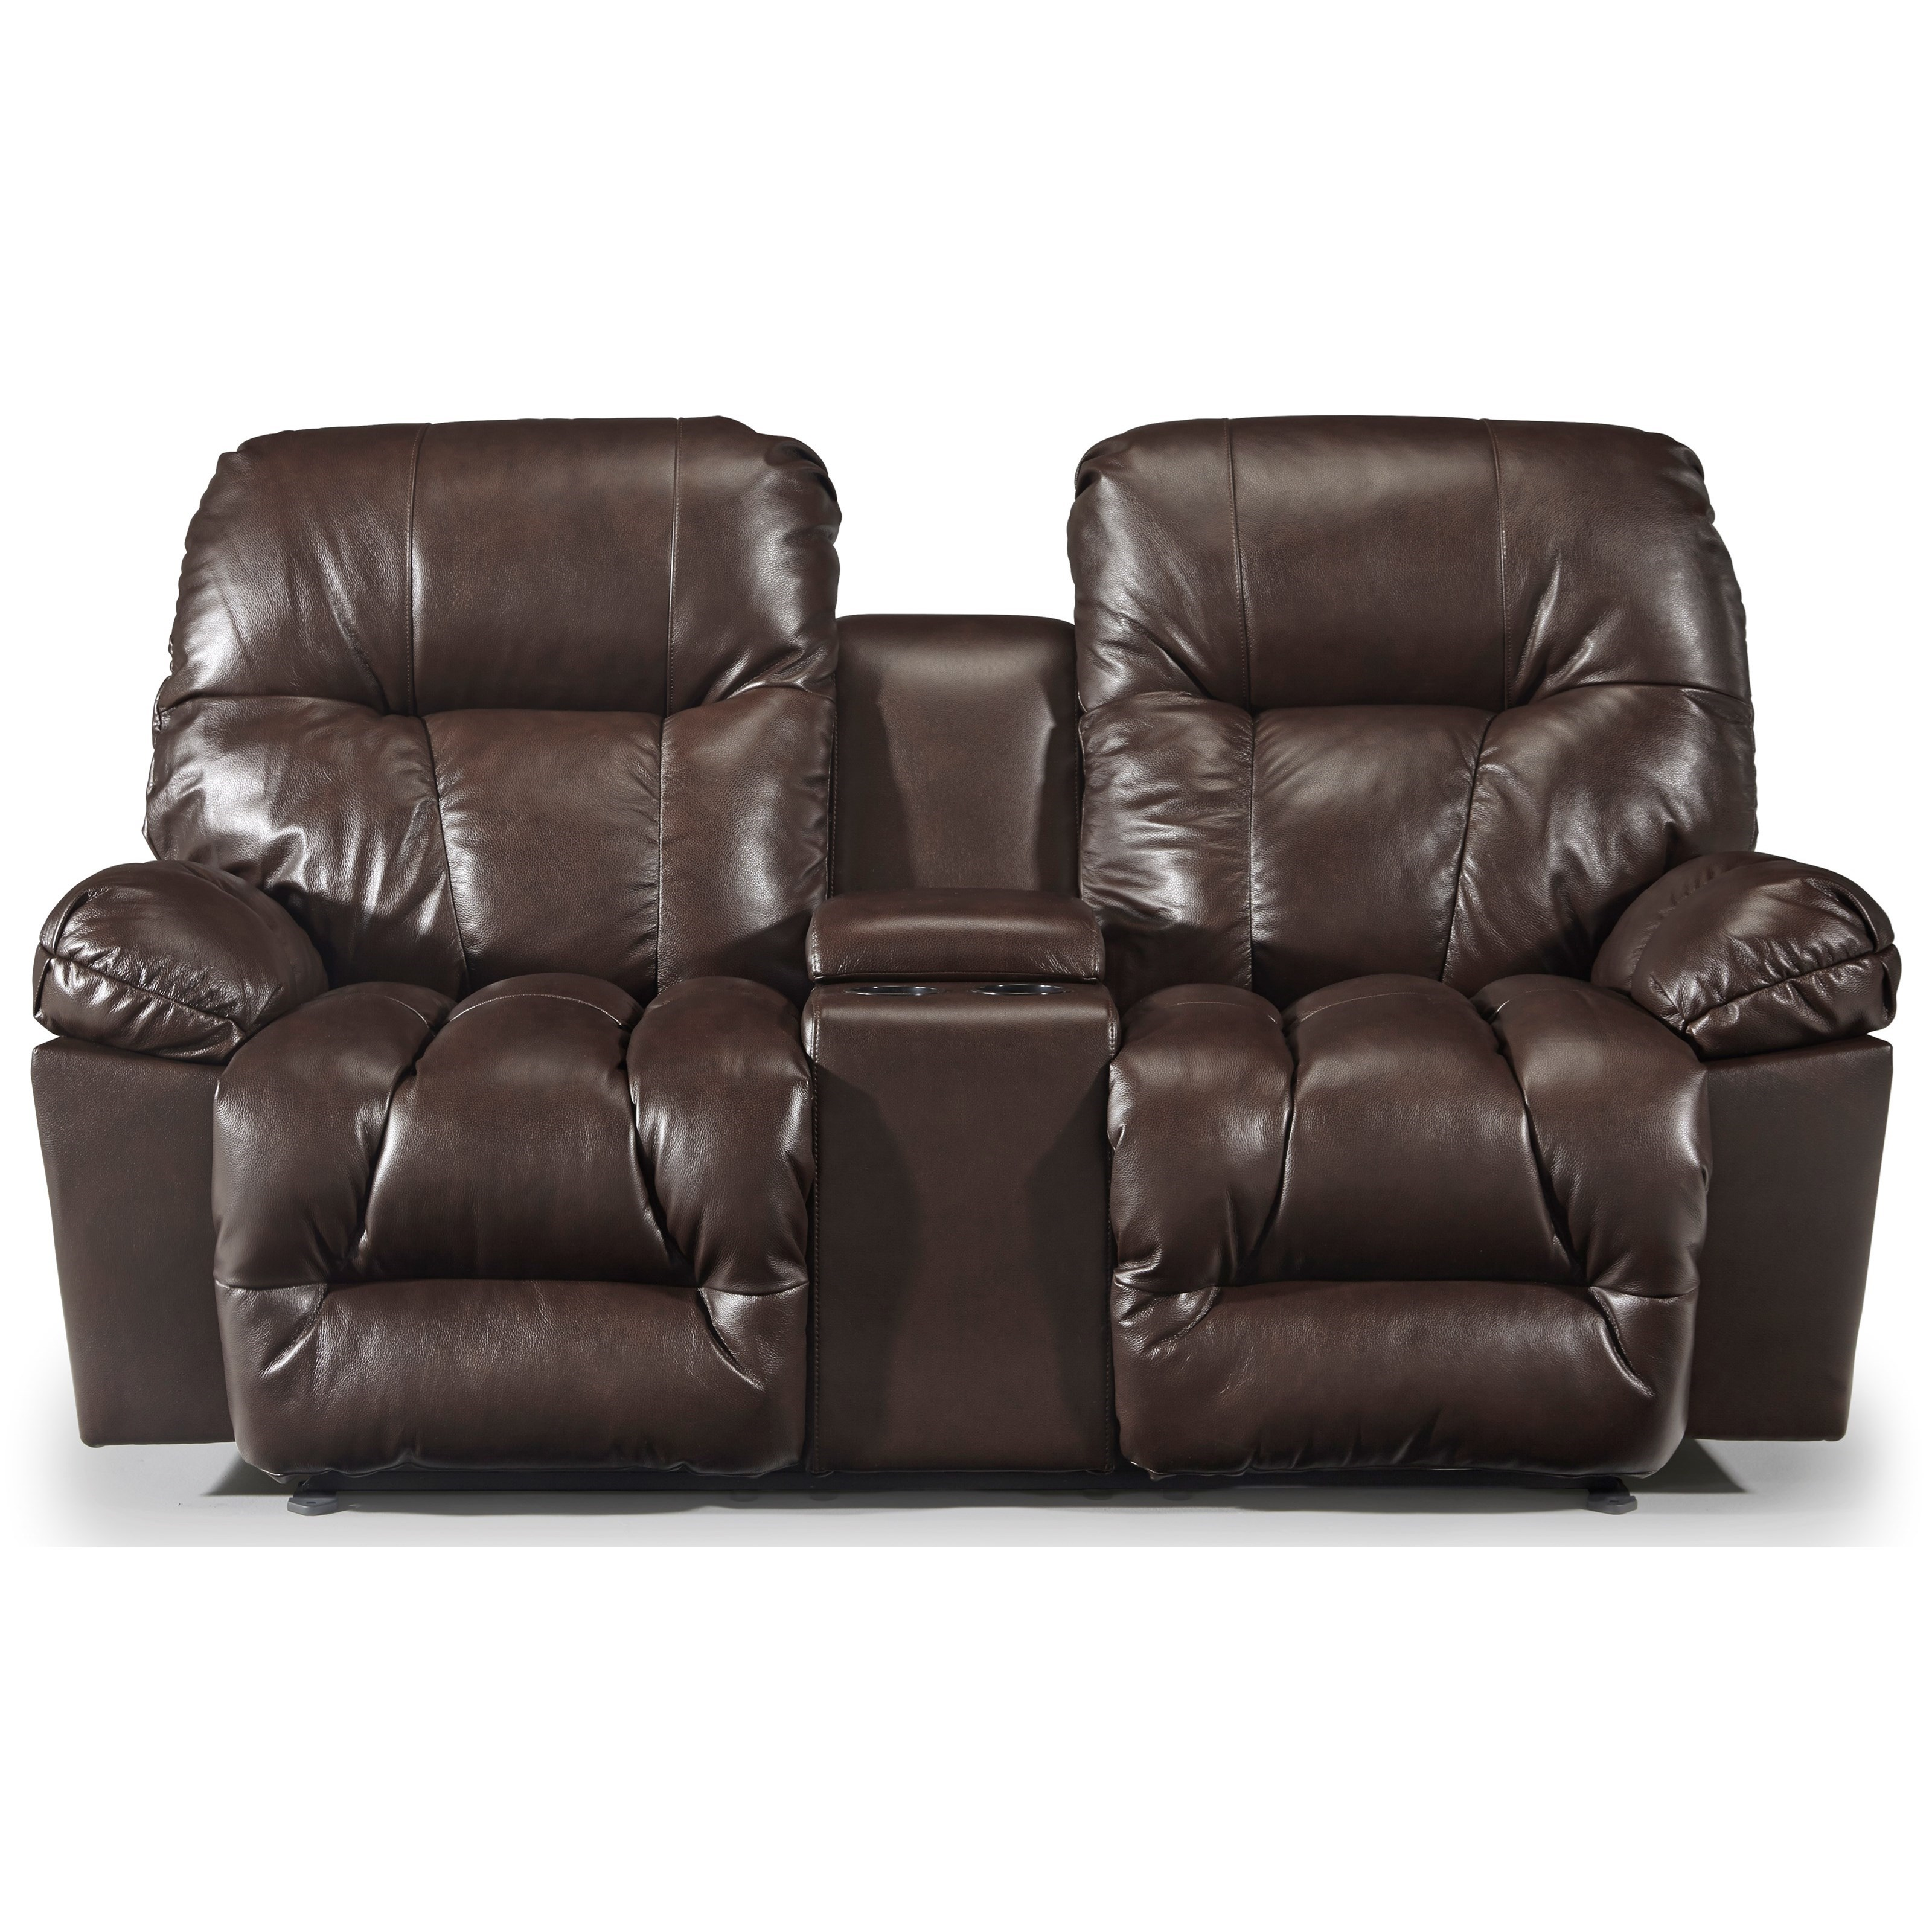 Retreat Rocker Recliner Console Loveseat by Best Home Furnishings at Best Home Furnishings